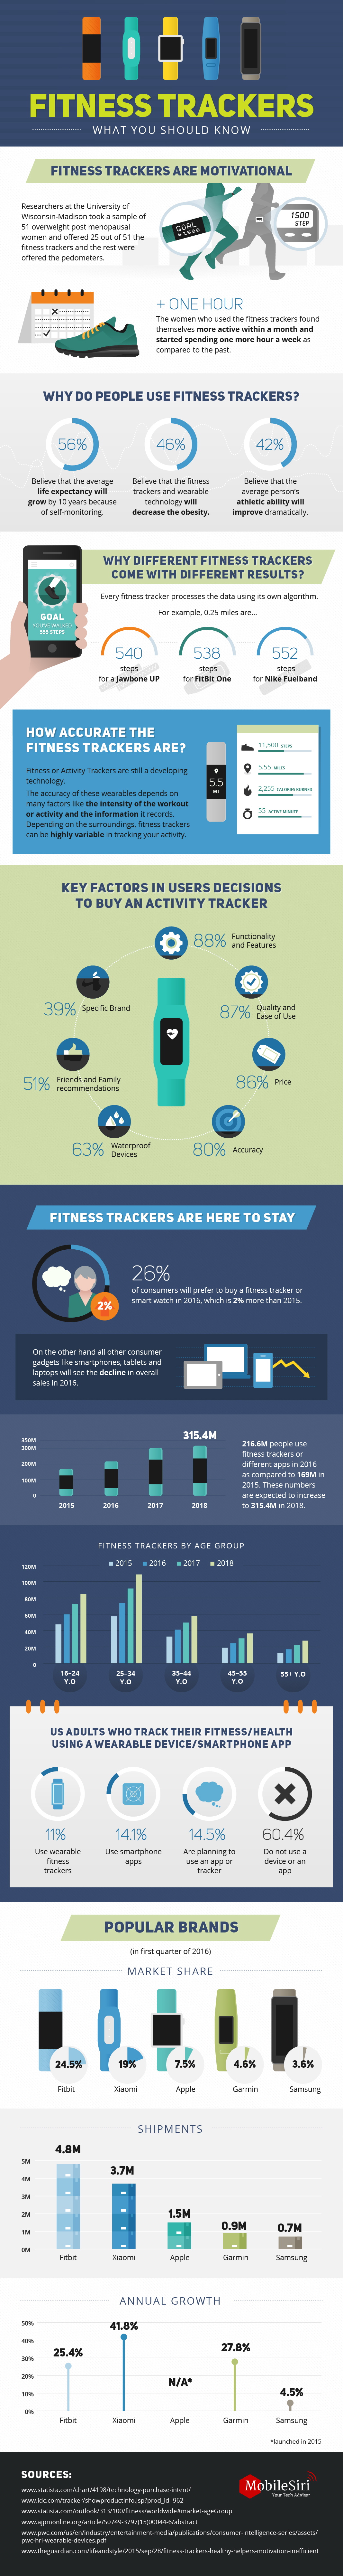 Best Fitness Trackers in 2016